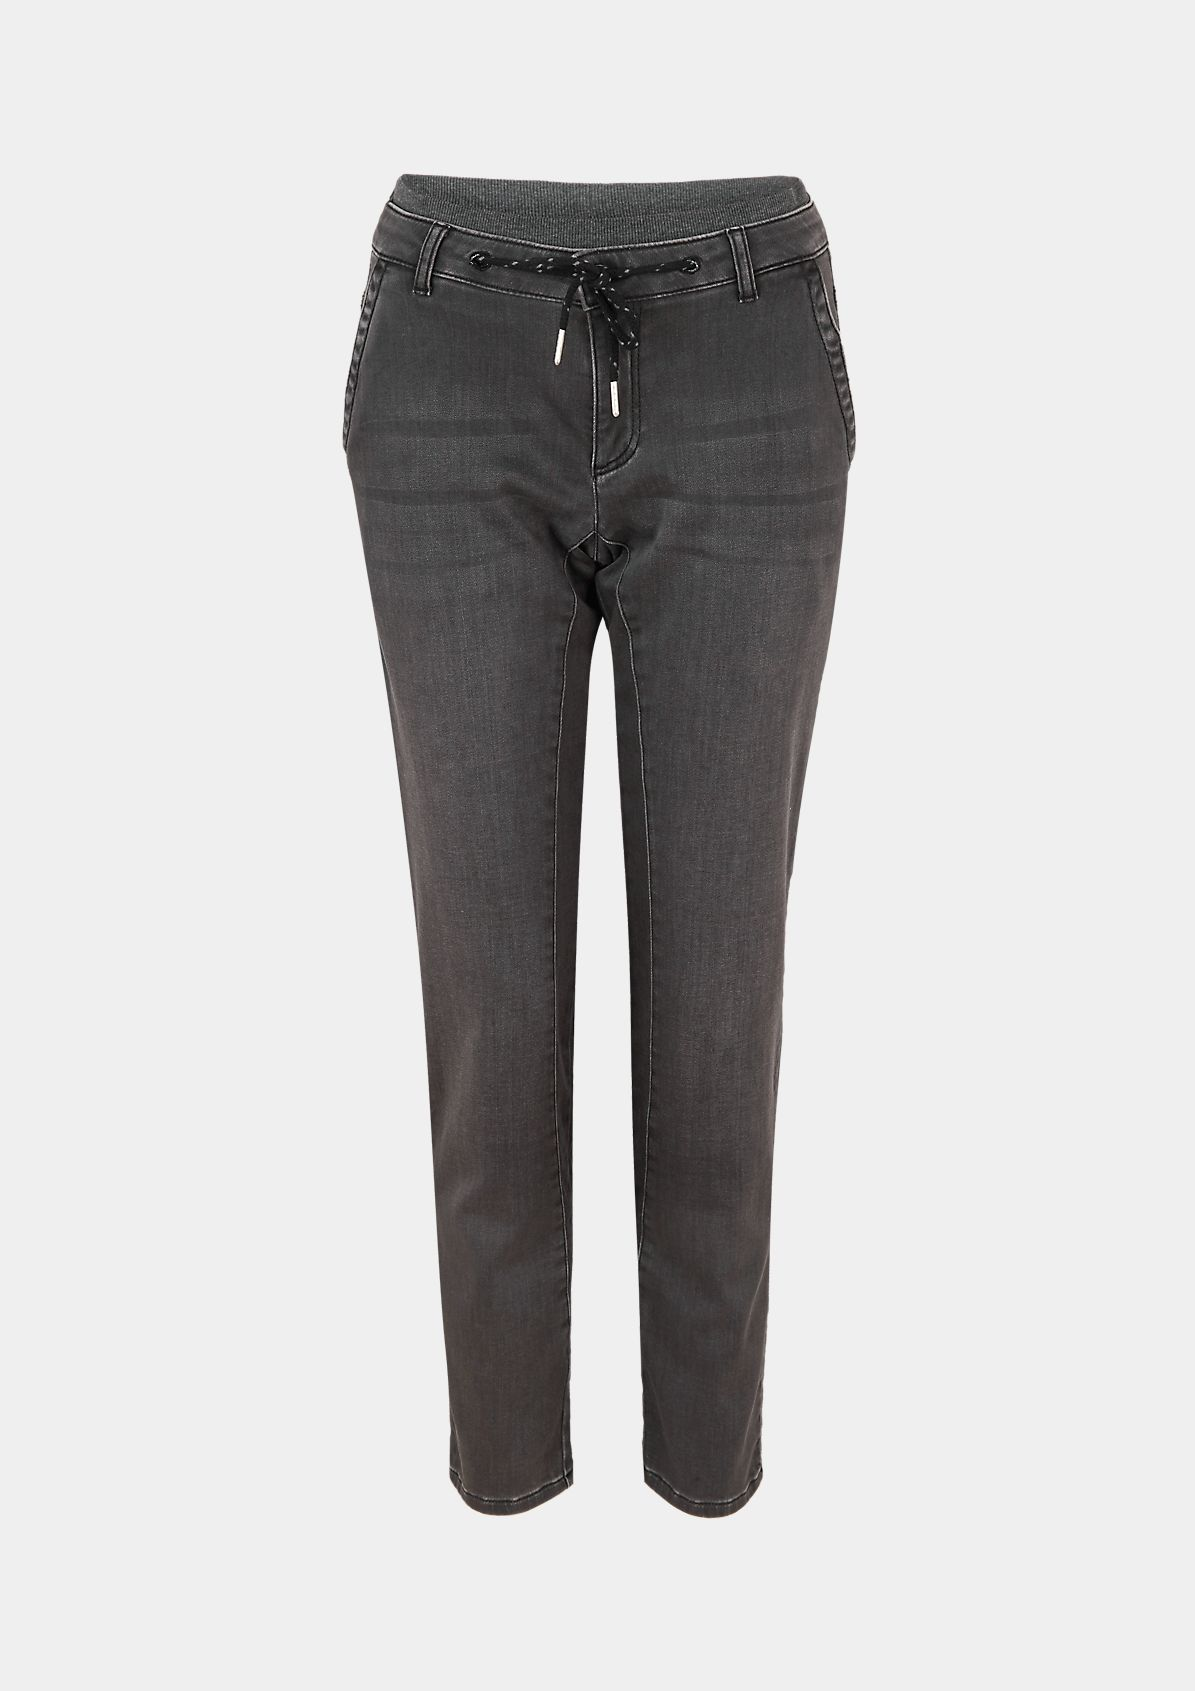 Regular Fit: Tapered leg-Hose mit Elastikbund